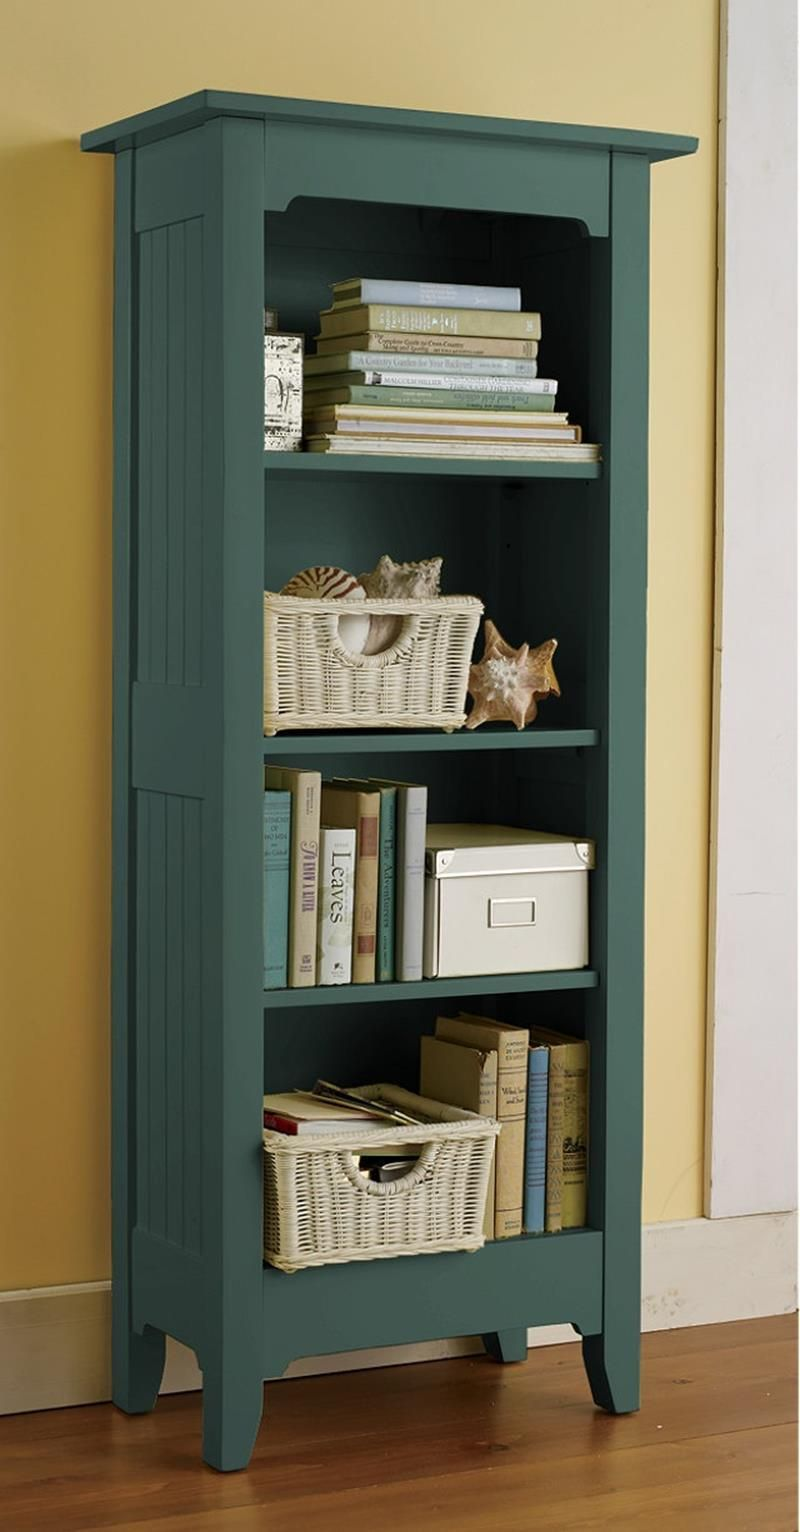 39 Perfect Bookshelves For Small Spaces and Decor Ideas